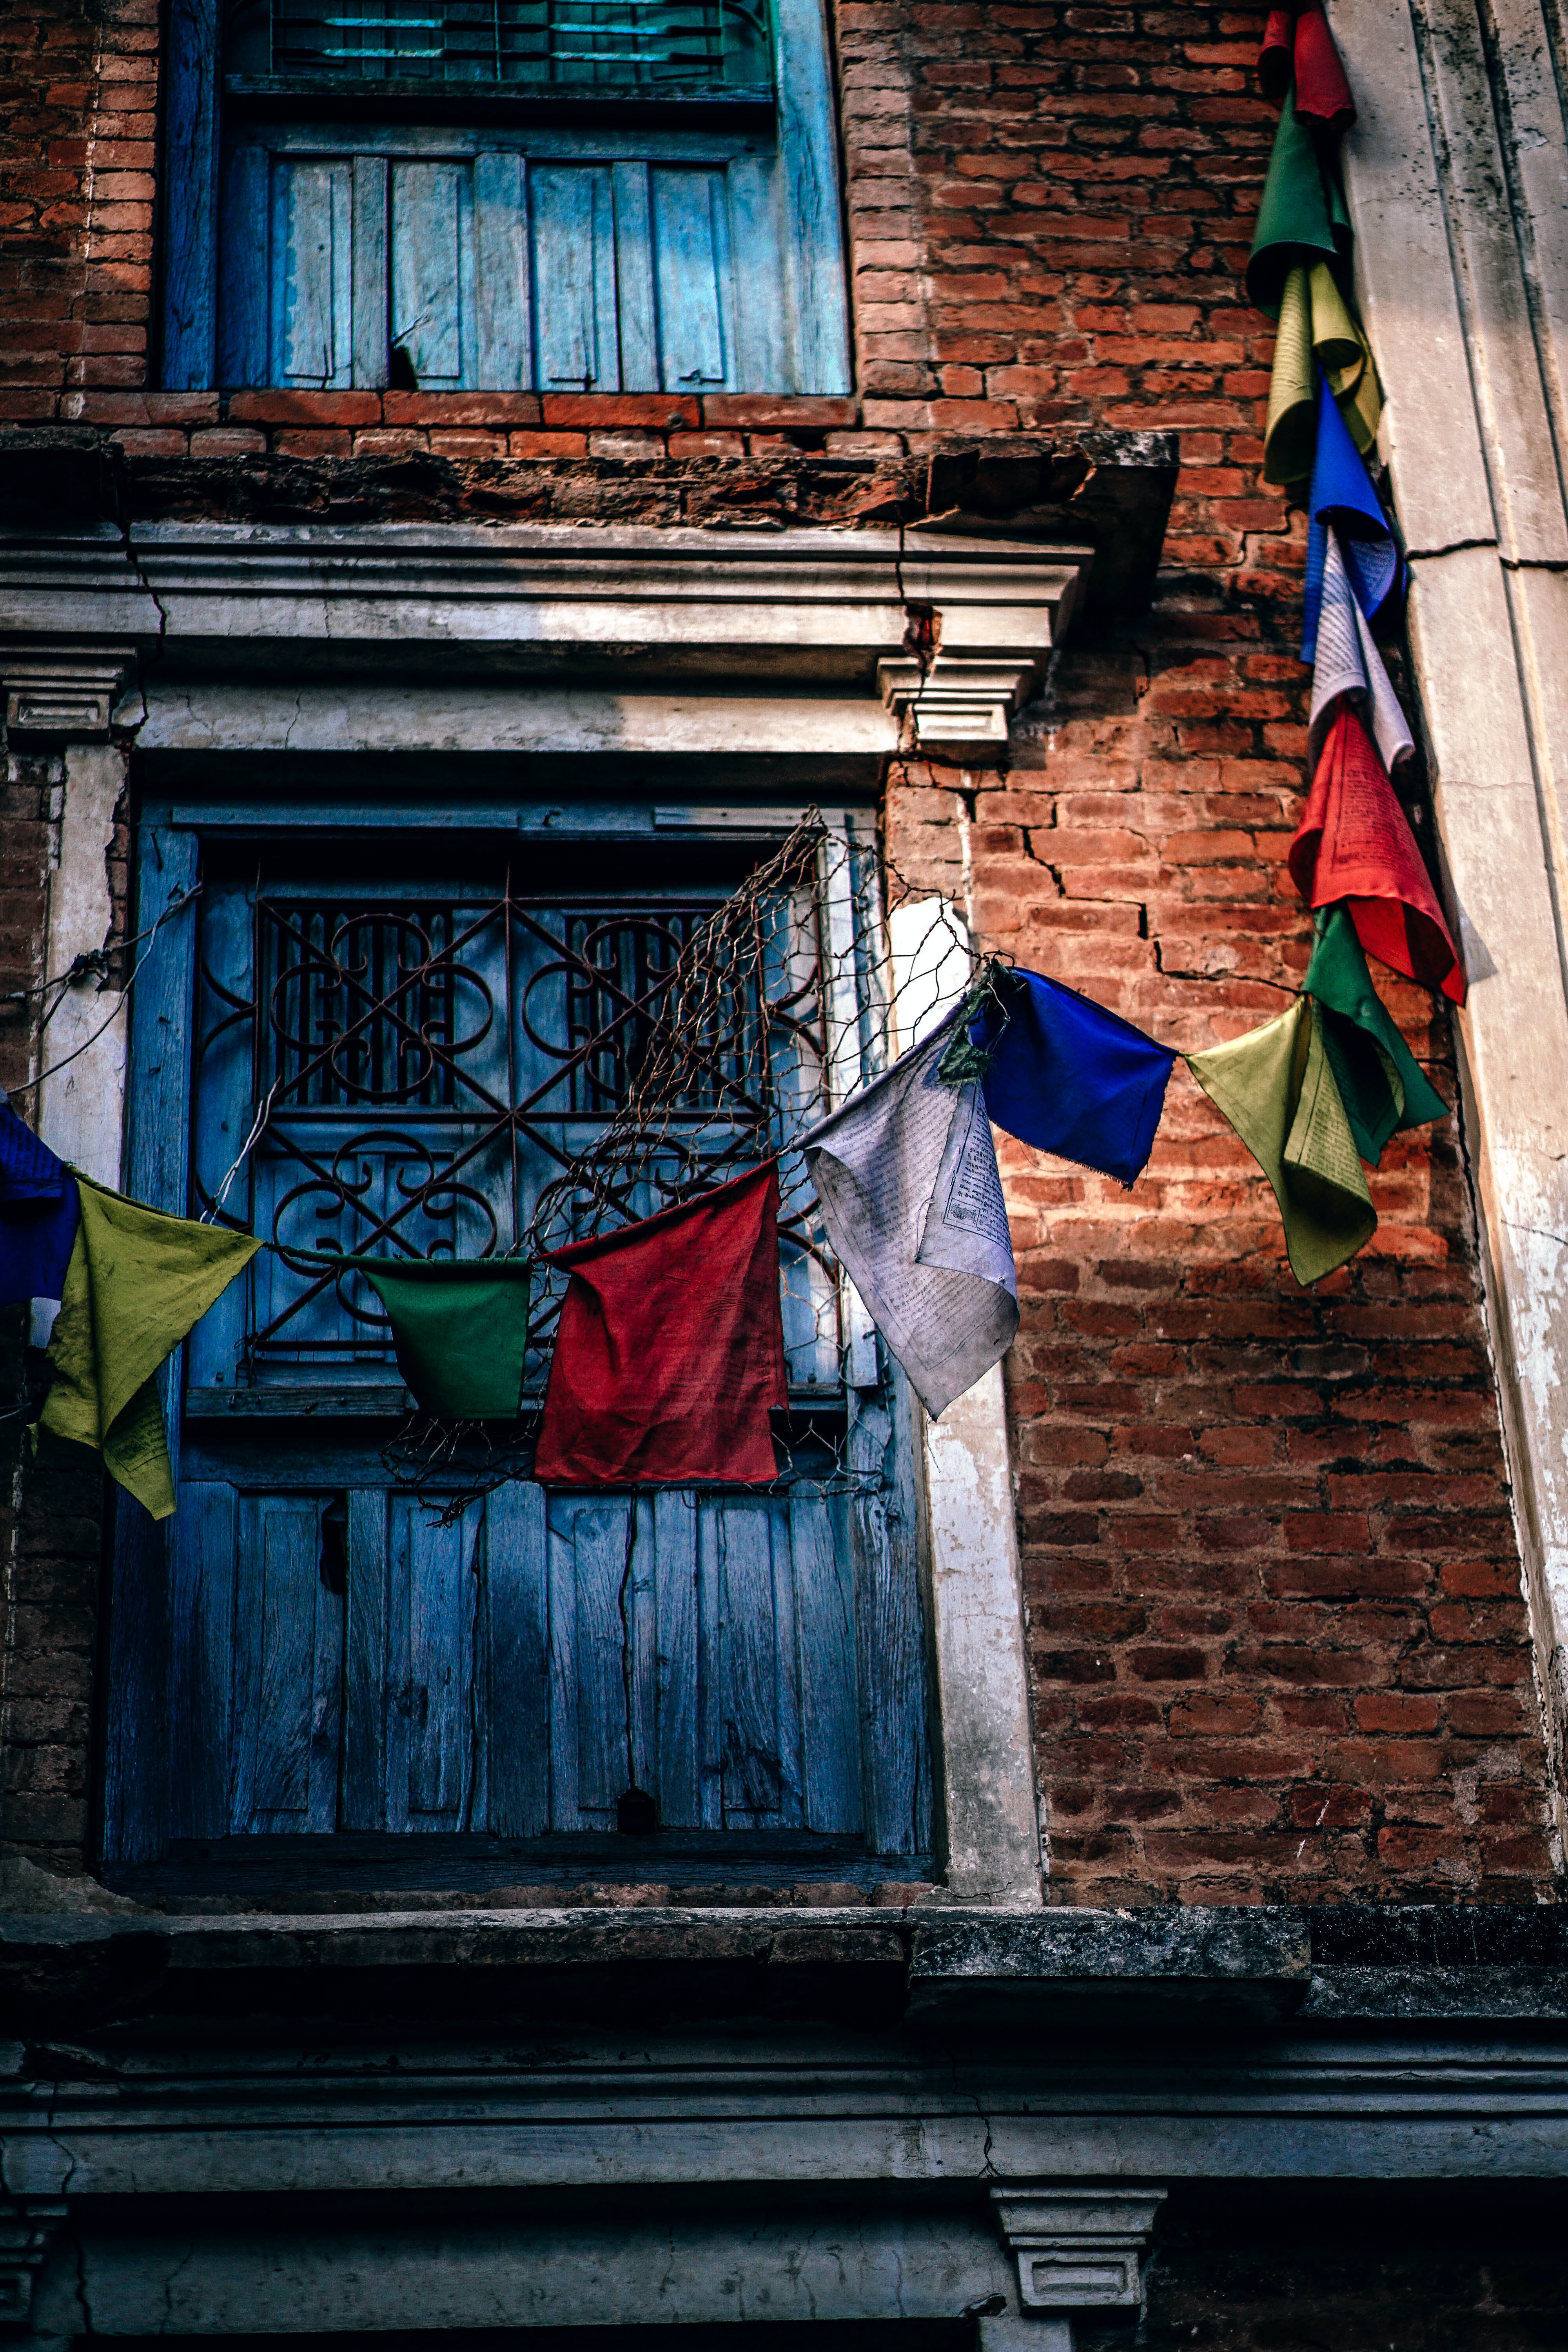 A brick building with blue window shutters and colored flags around it in Swayambhu Stupa